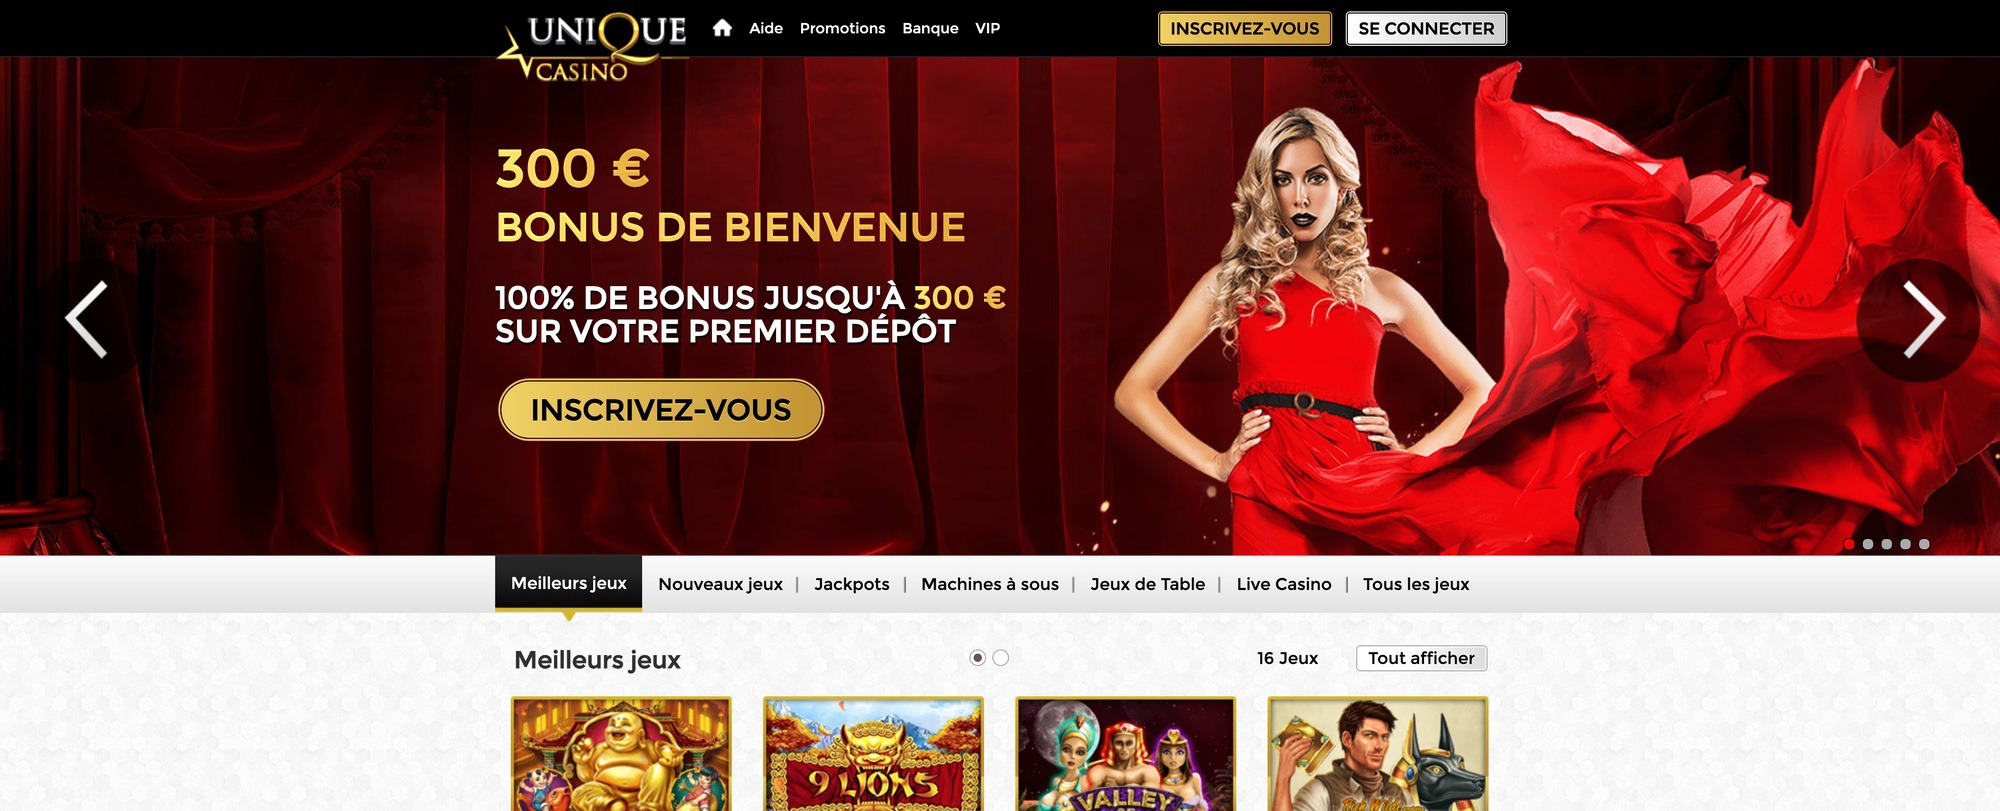 Unique Casino Officiel